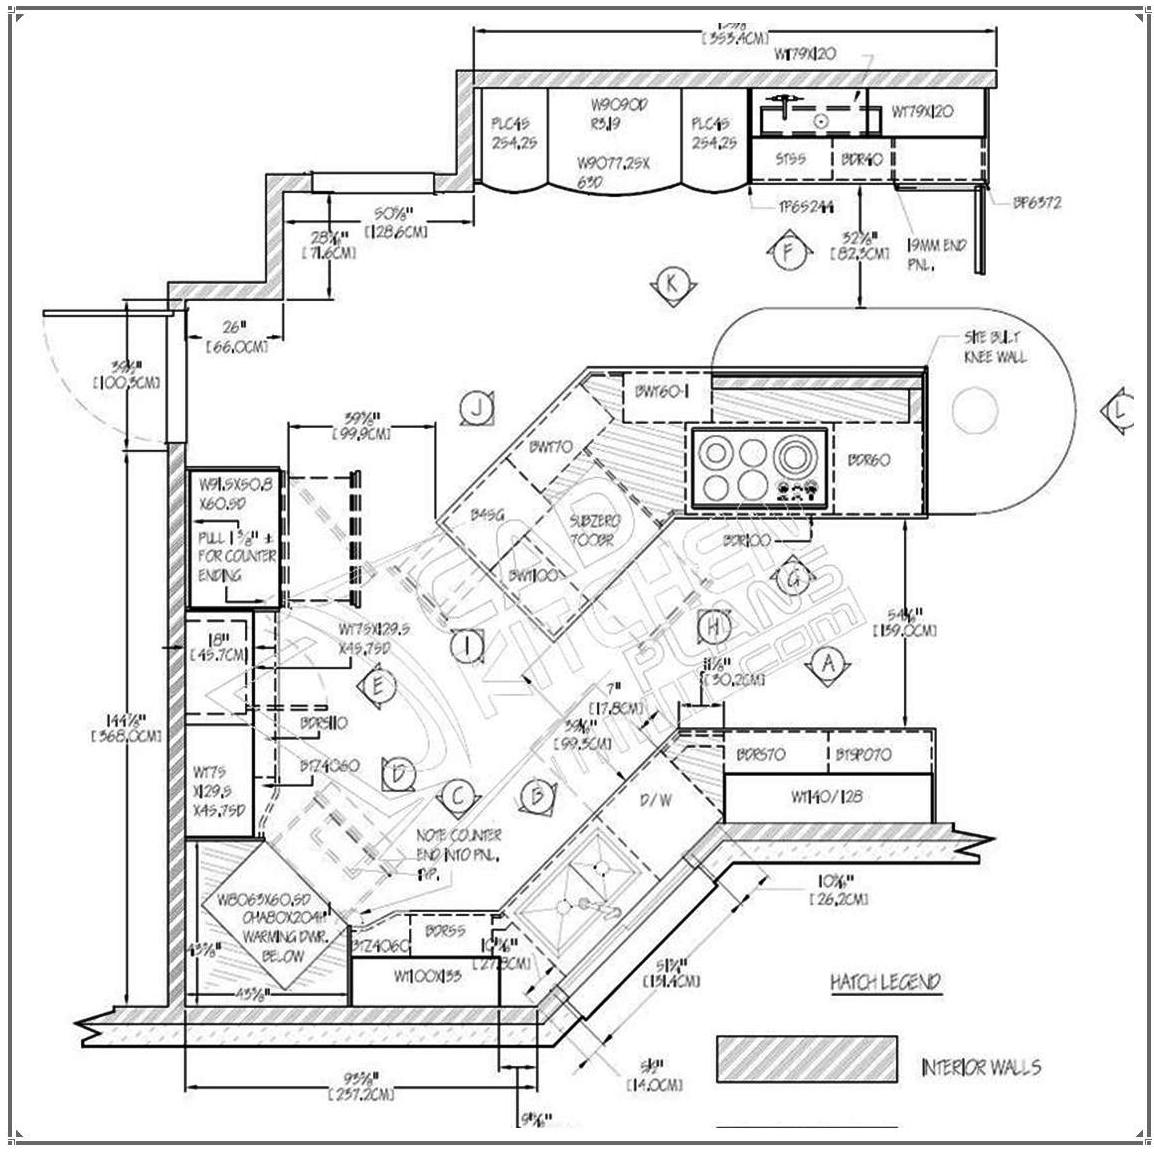 House site plan drawing at free for for House site plan